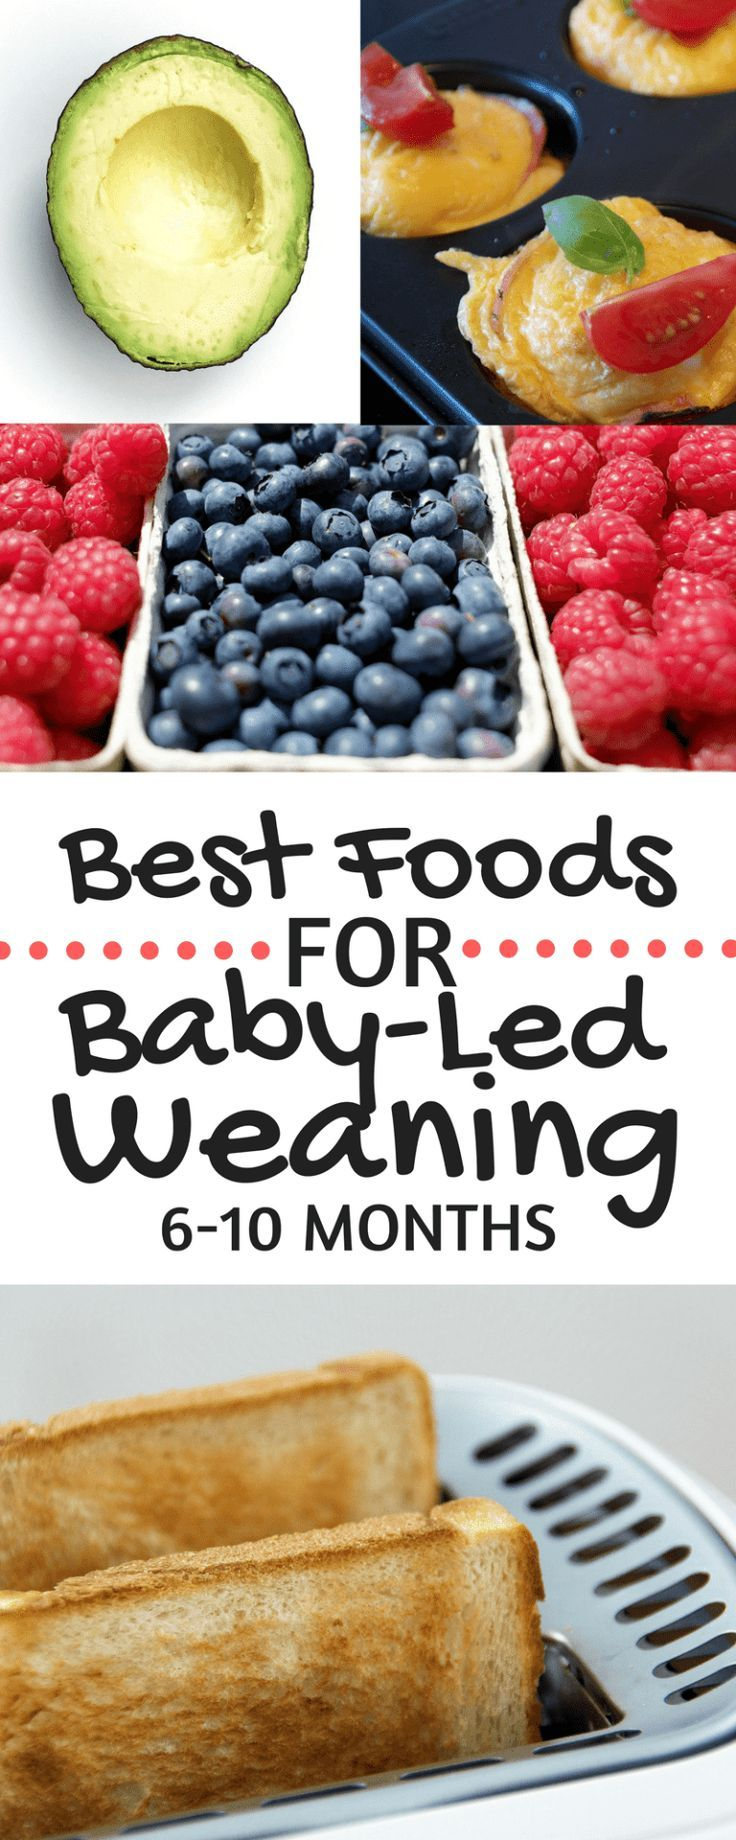 Best foods for babyled weaning weaning foods baby food